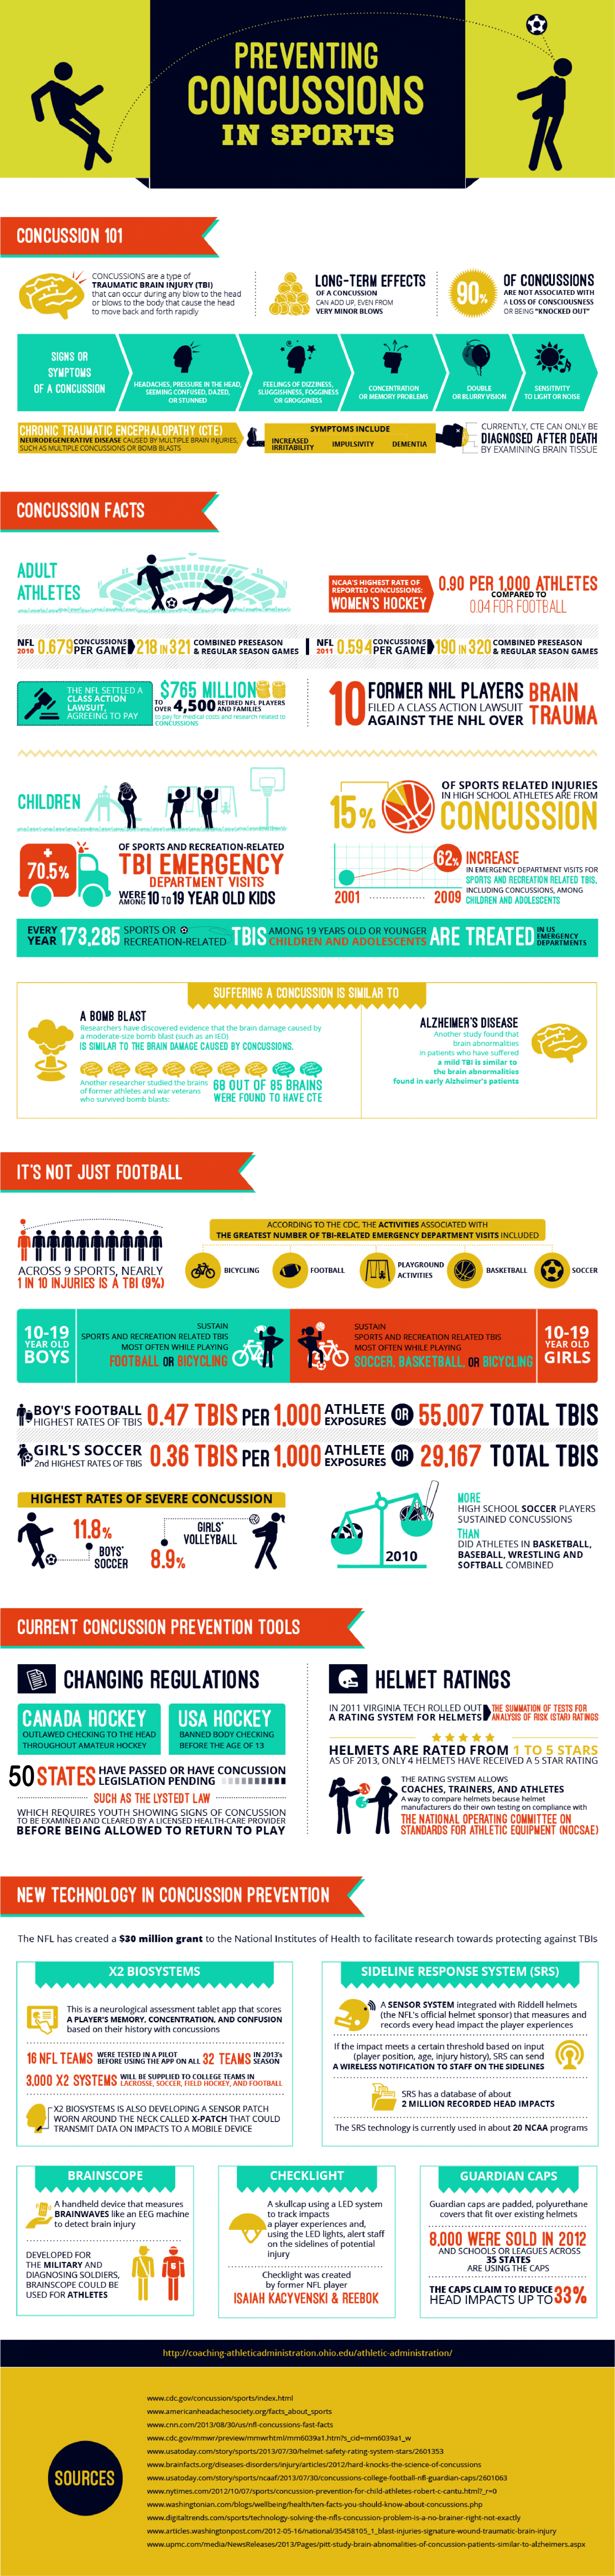 Preventing Concussions in Sports Infographic